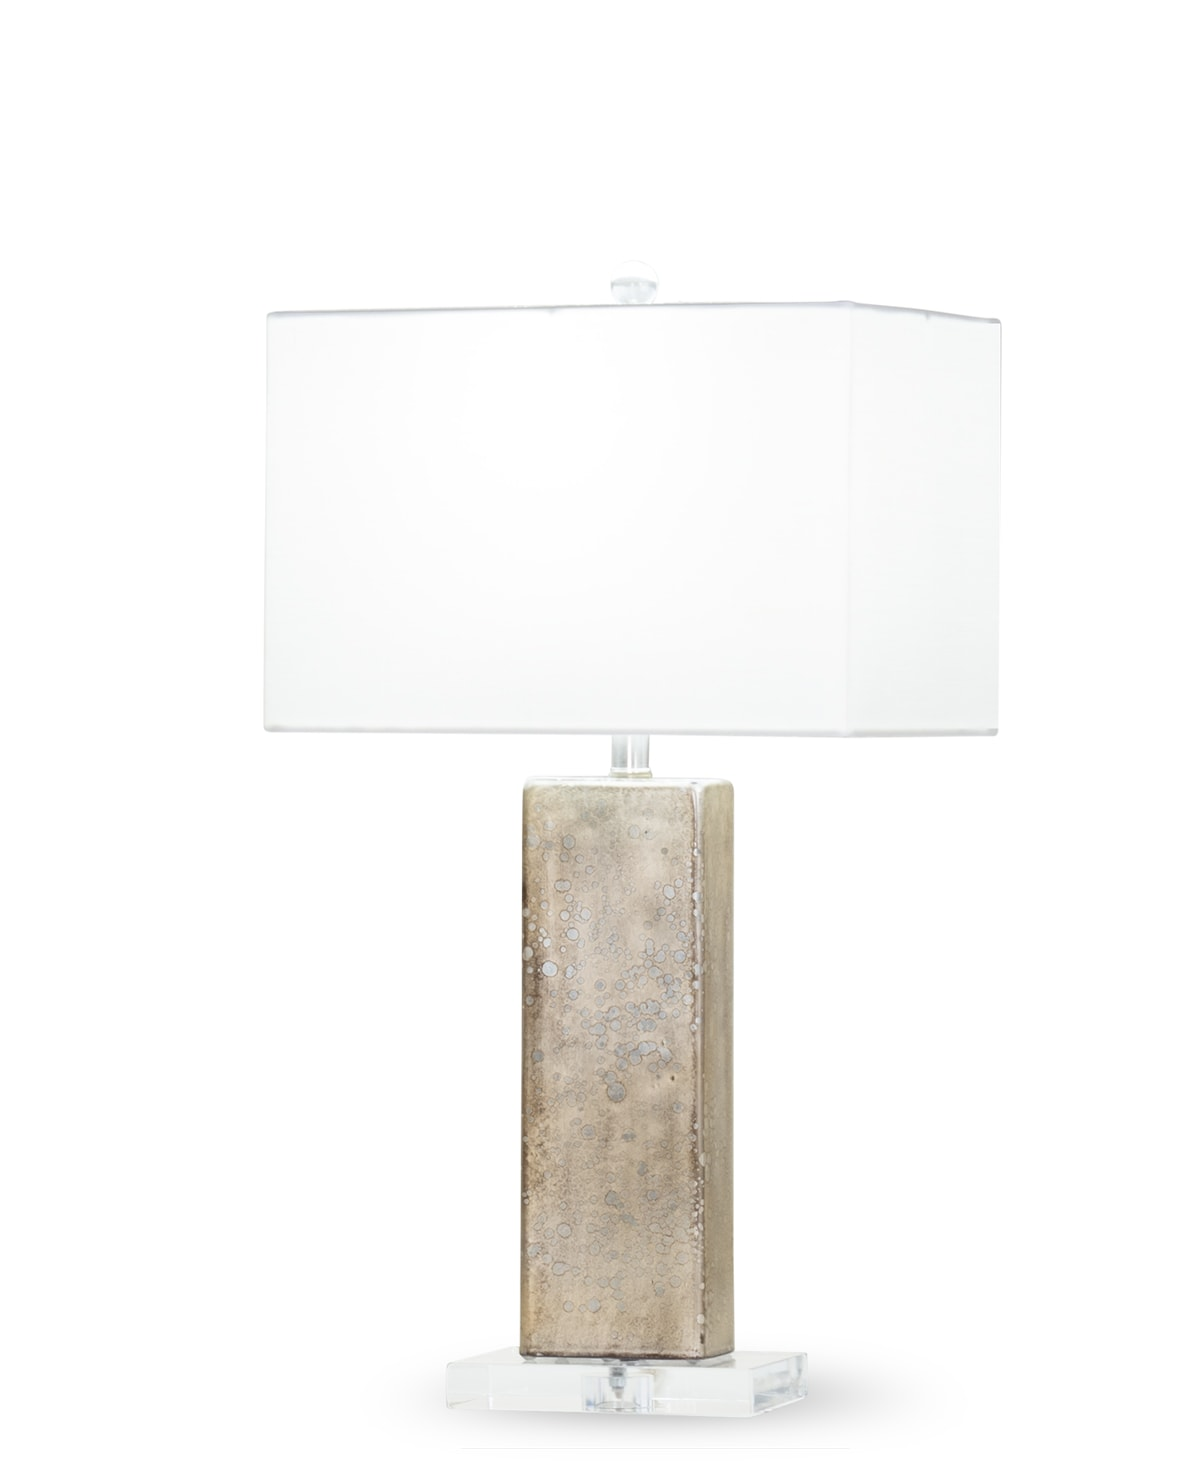 FlowDecor Sumatra Table Lamp in mouth-blown glass with dark champagne metallic finish and white cotton rectangular shade (# 4401)